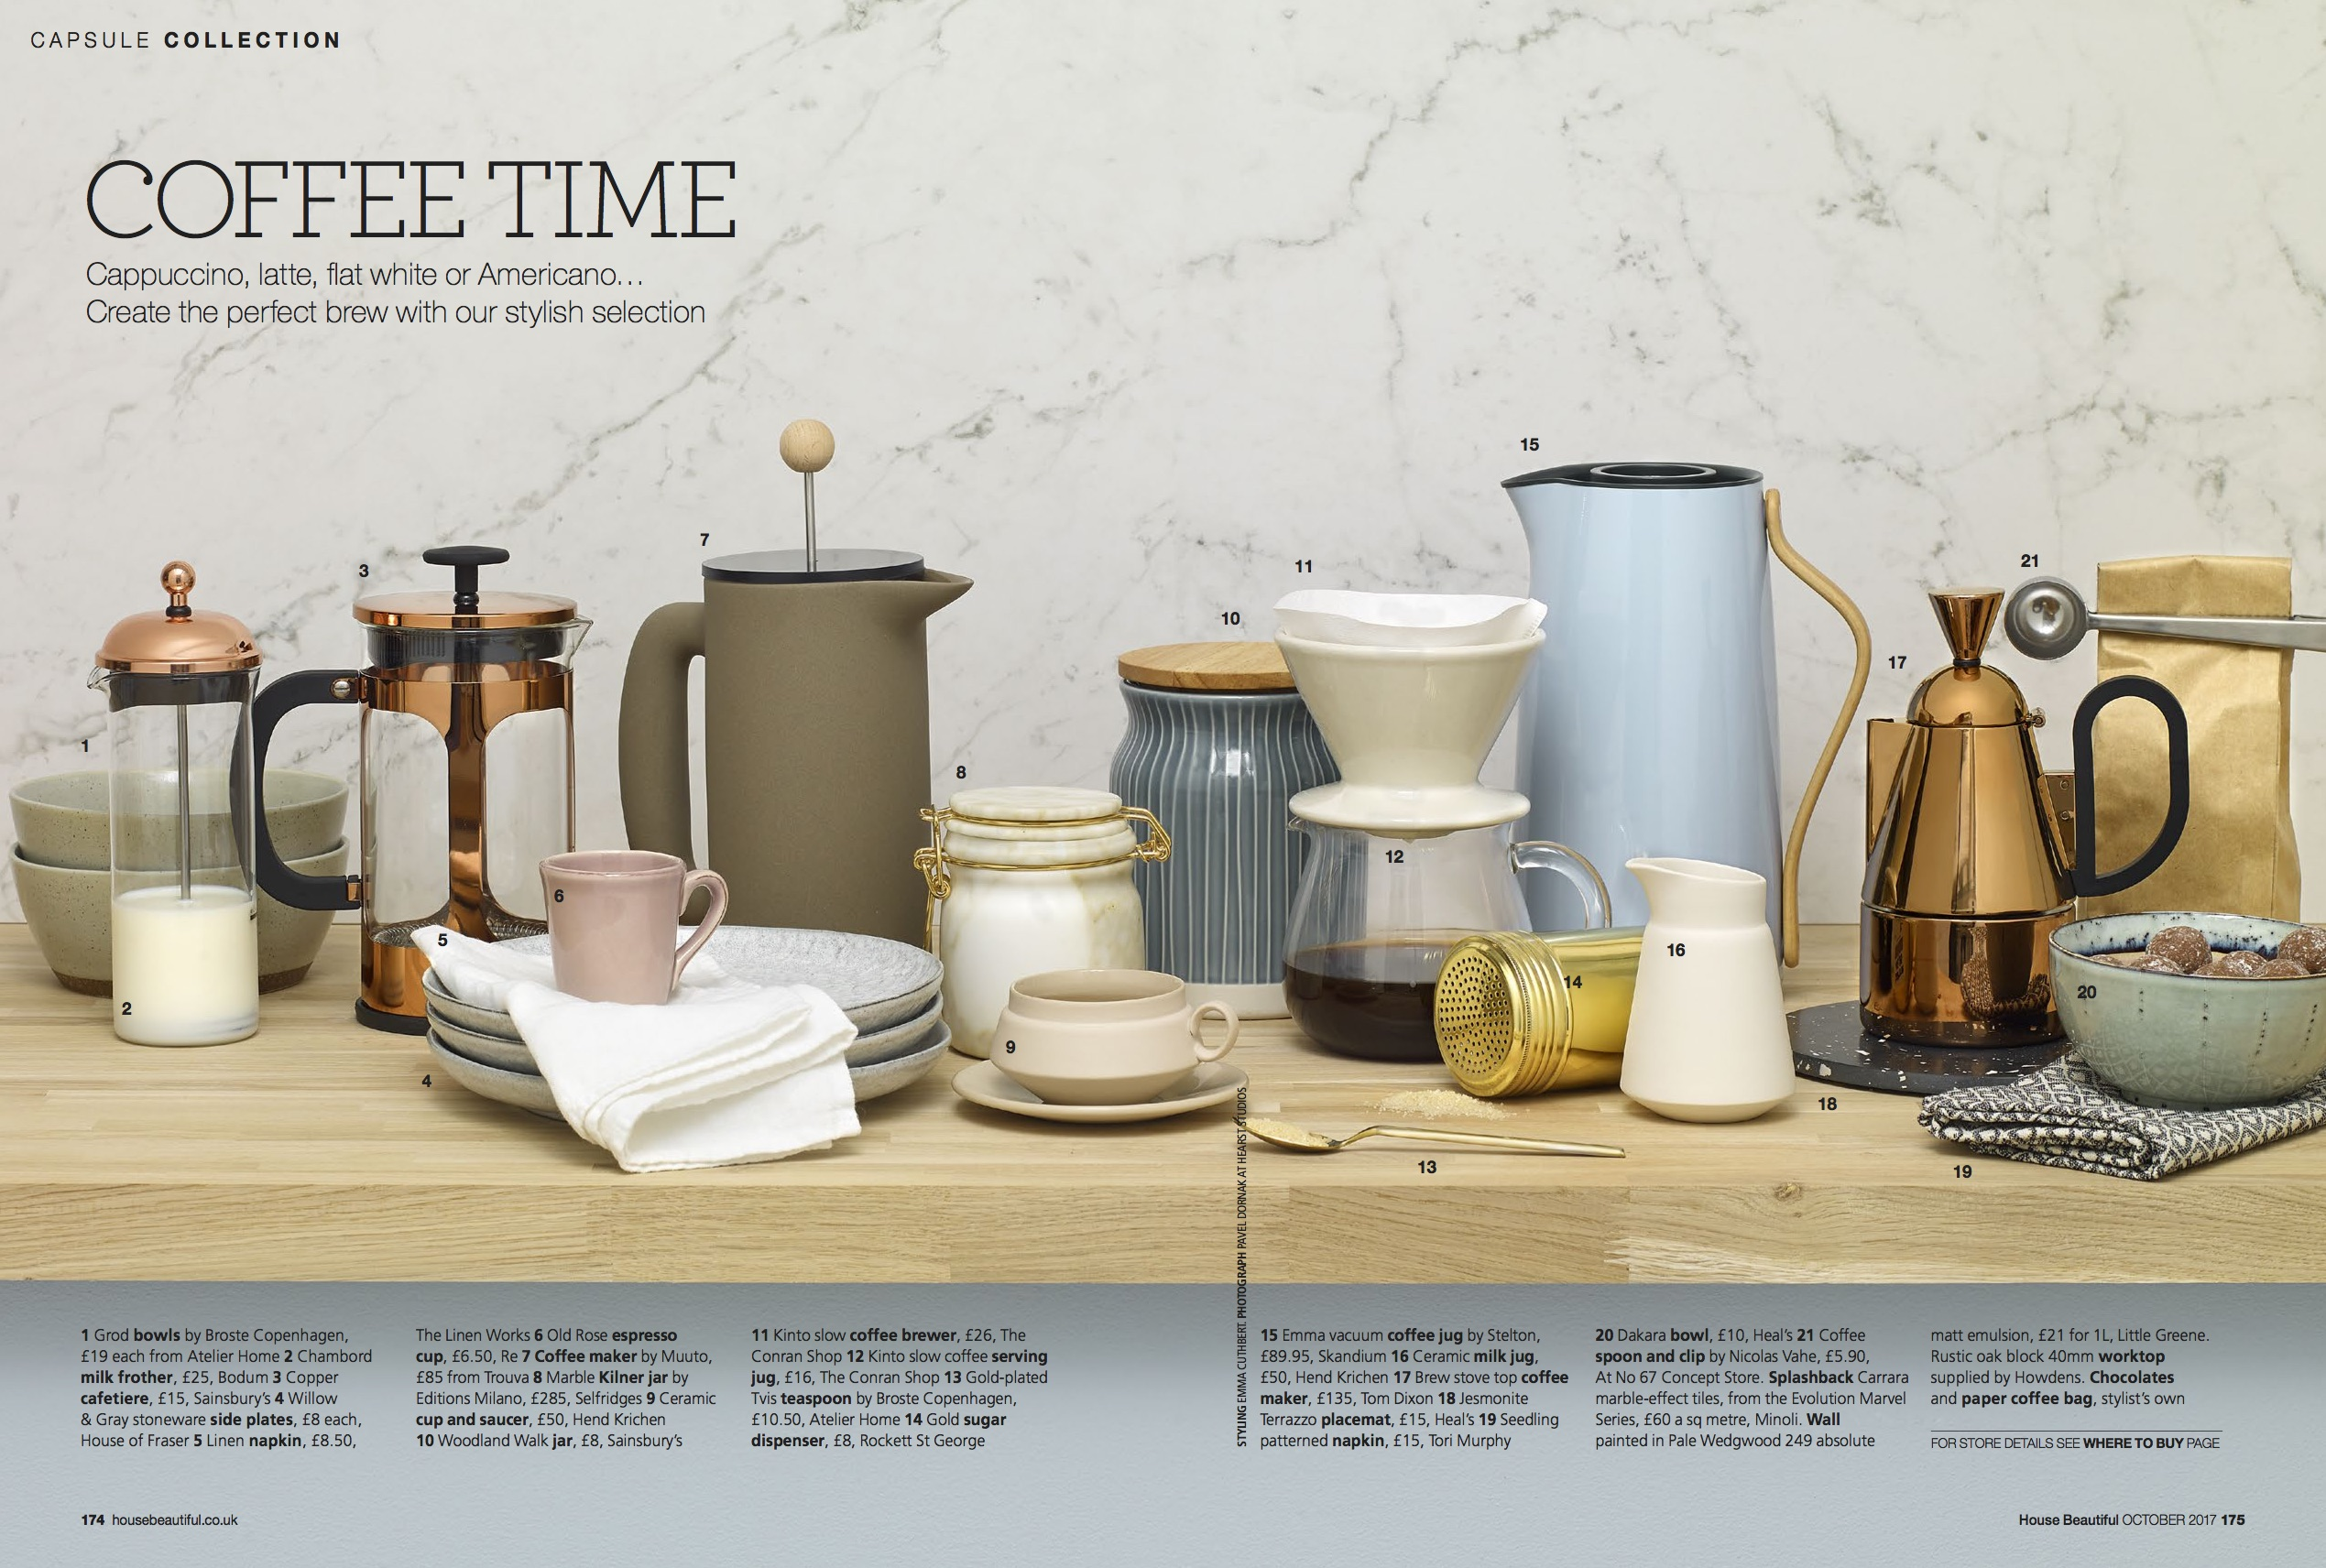 Capsule collection - coffee time_pdf_spread